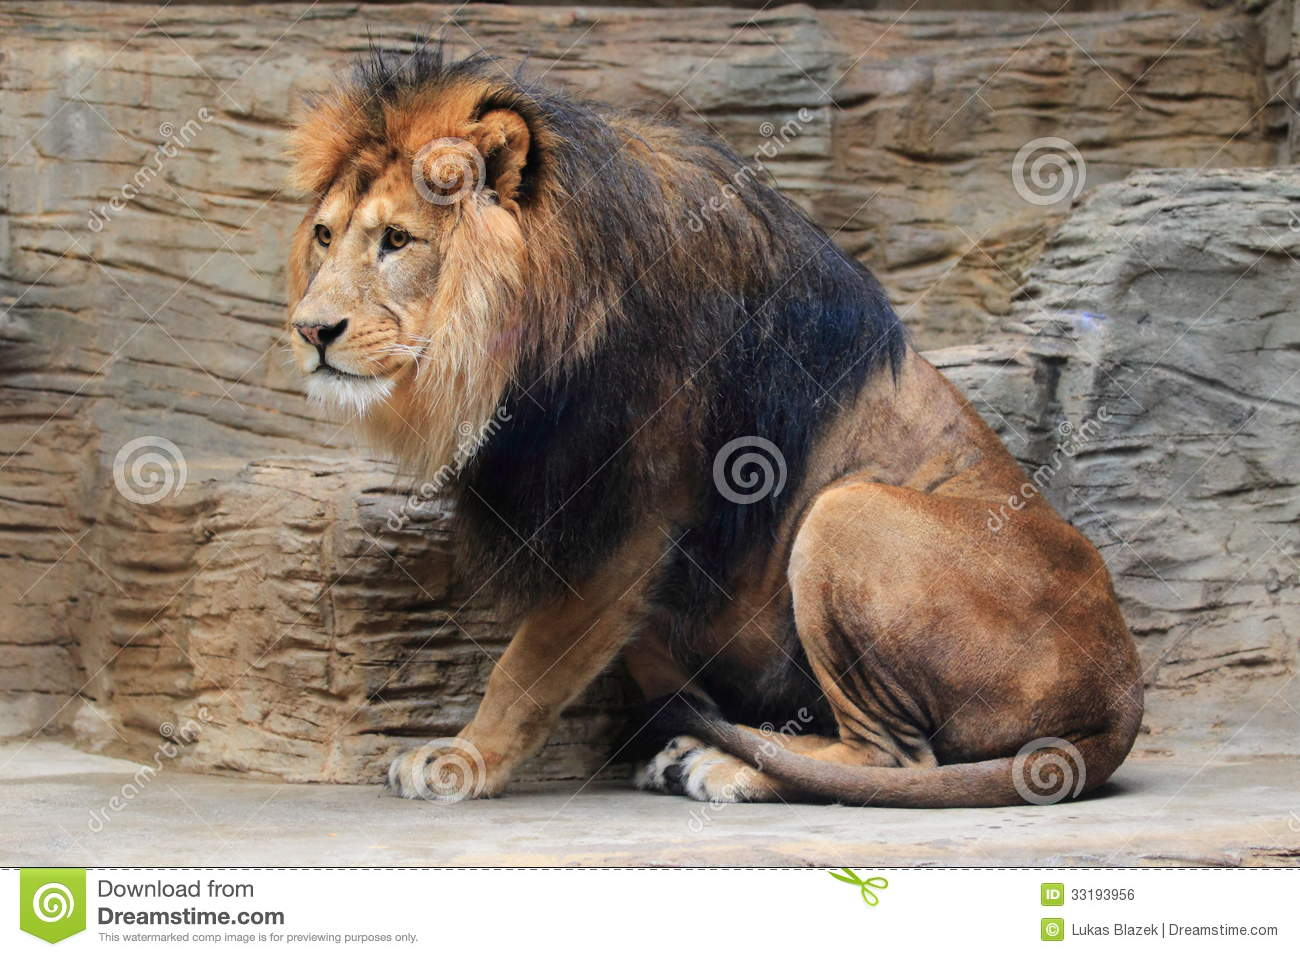 Barbary Lion Royalty Free Stock Image - Image: 33193956